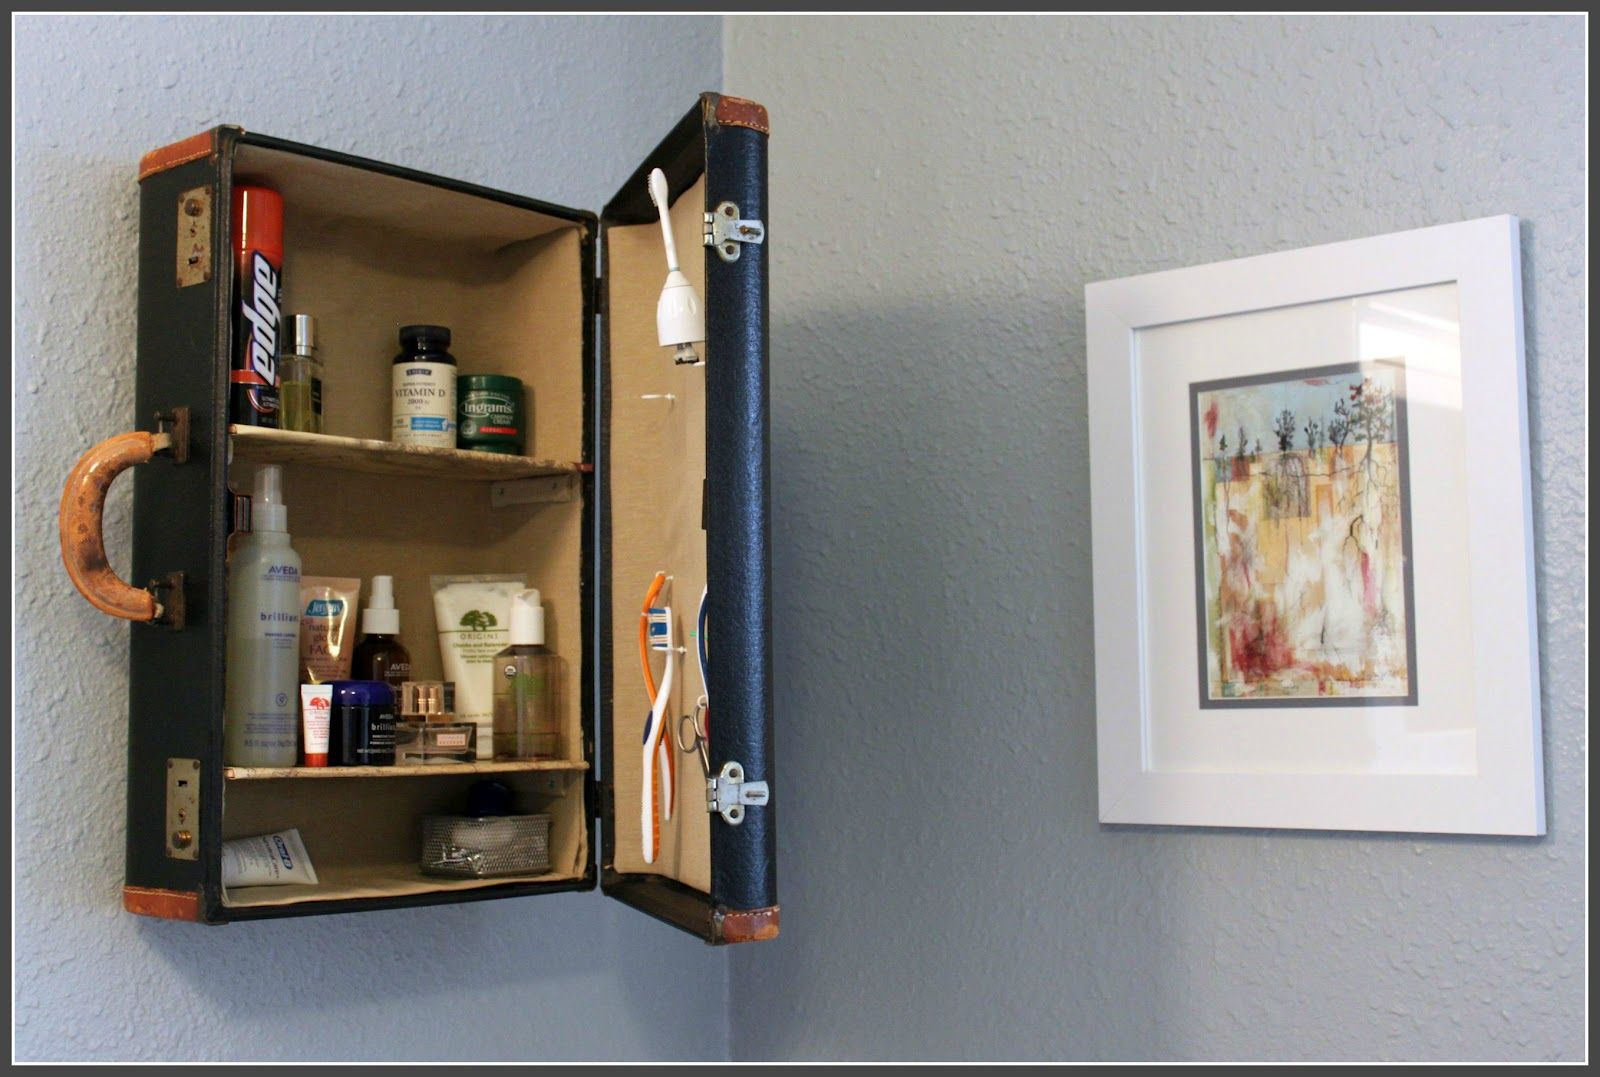 Vintage Decorative Suitcases Turn Old Suitcases Into Wall Shelving Oldsuitcases